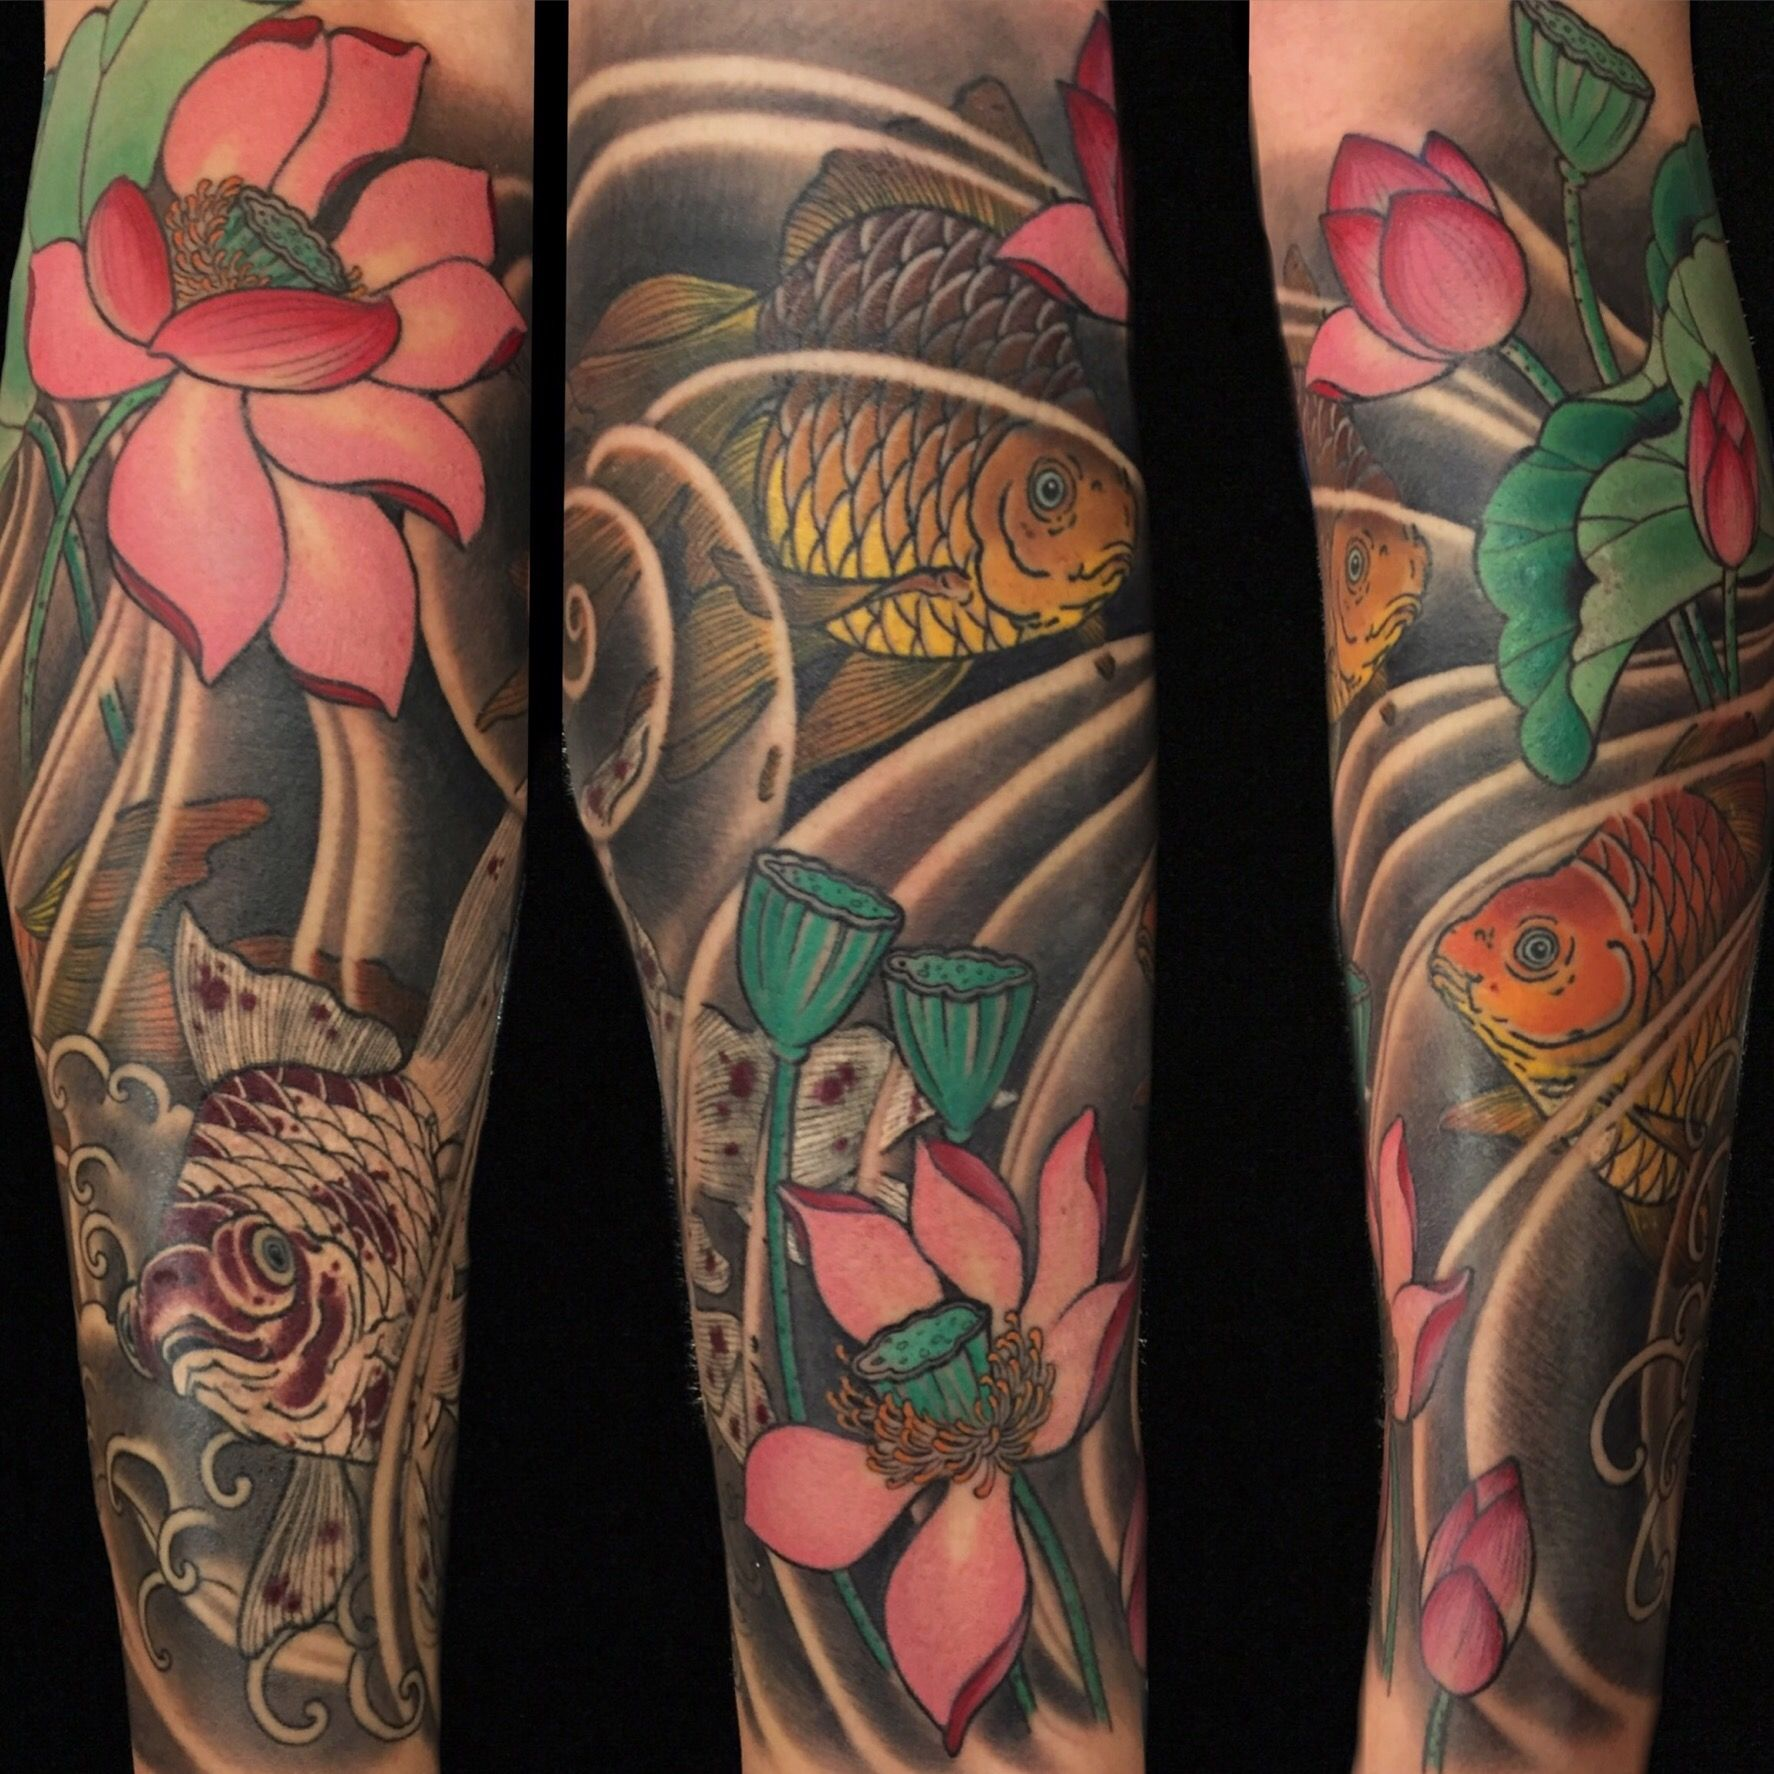 Goldfish Kingyo And Lotus Japanese Style Tattoos By Cindy Maxwell Seventh Son Tattoo San Francisco California Da Japanese Tattoo Tattoos Tattoo For Son